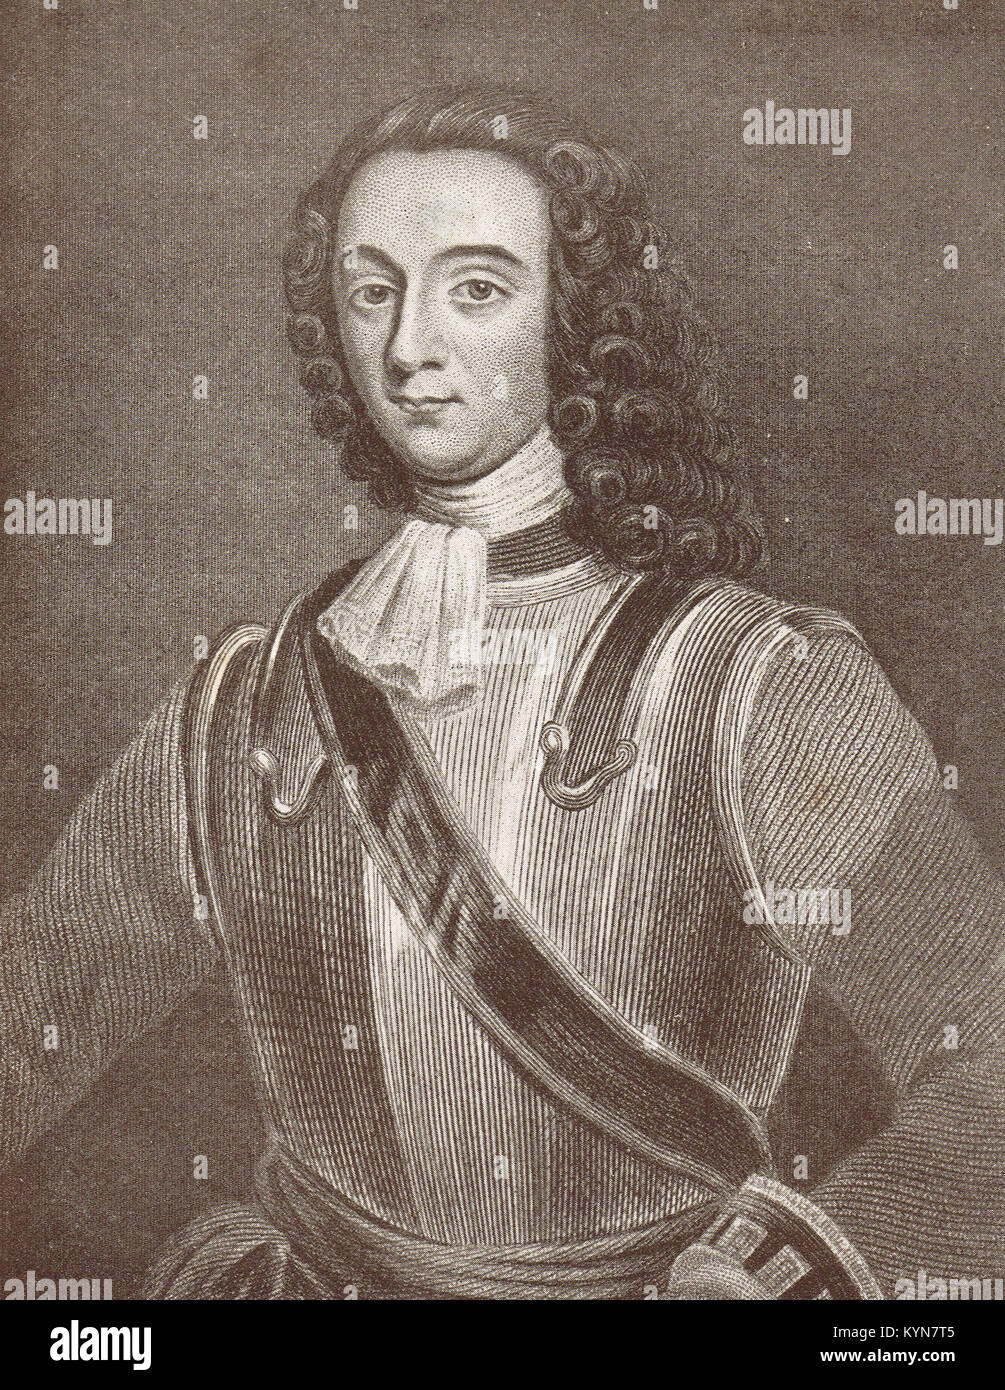 Counsellor David Cairns, prominent defender at the Siege of Derry, 1689 - Stock Image